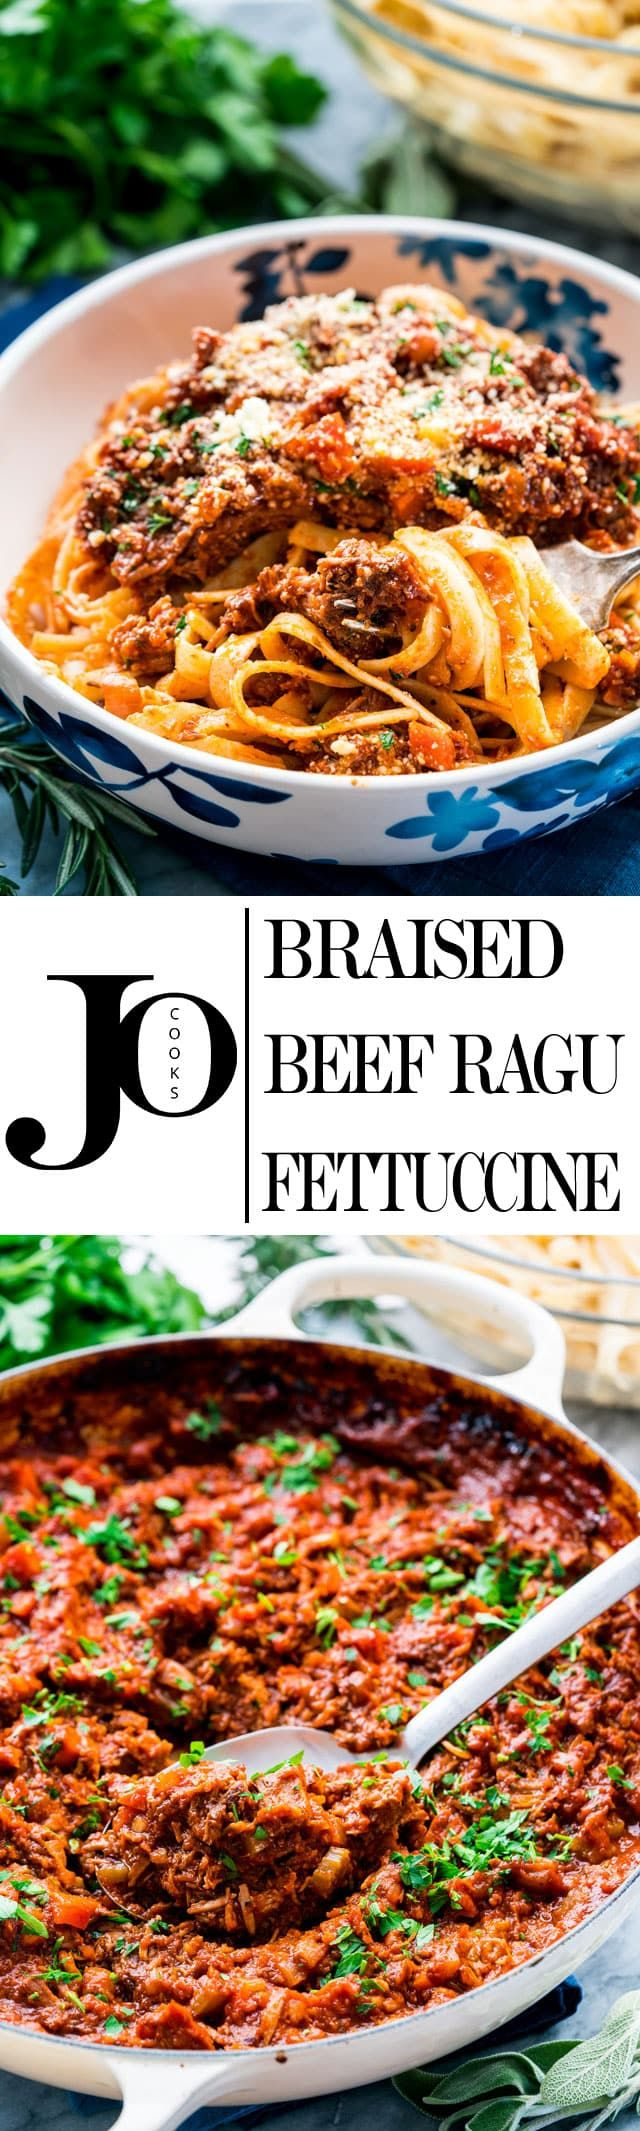 I give you Braised Beef Ragu Fettuccine for when you need a comforting and delicious dish. This slow braised, fall-apart-tender beef is cooked in a rich tomato and veggie sauce served over a bed of al dente fettuccine. www.jocooks.com #ragu